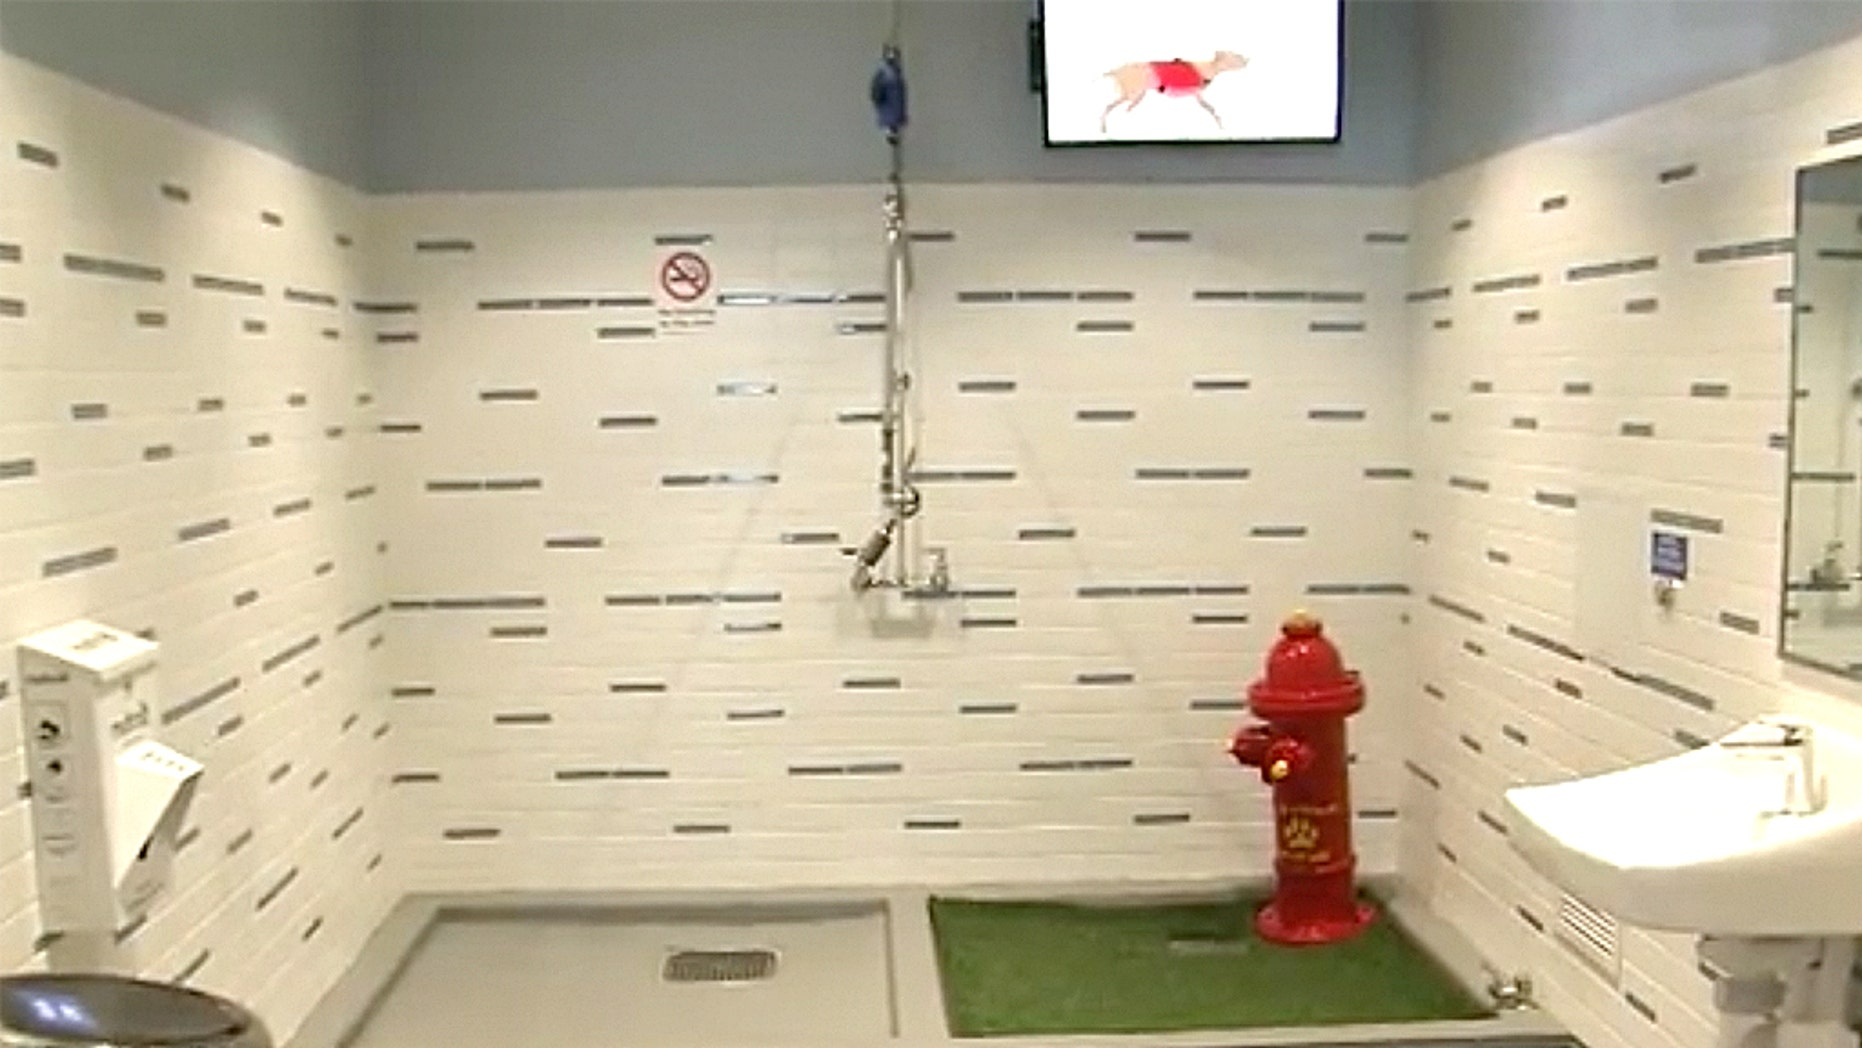 The Atlanta airport revealed it cost $3.9 million to install seven dog bathrooms inside the terminal.